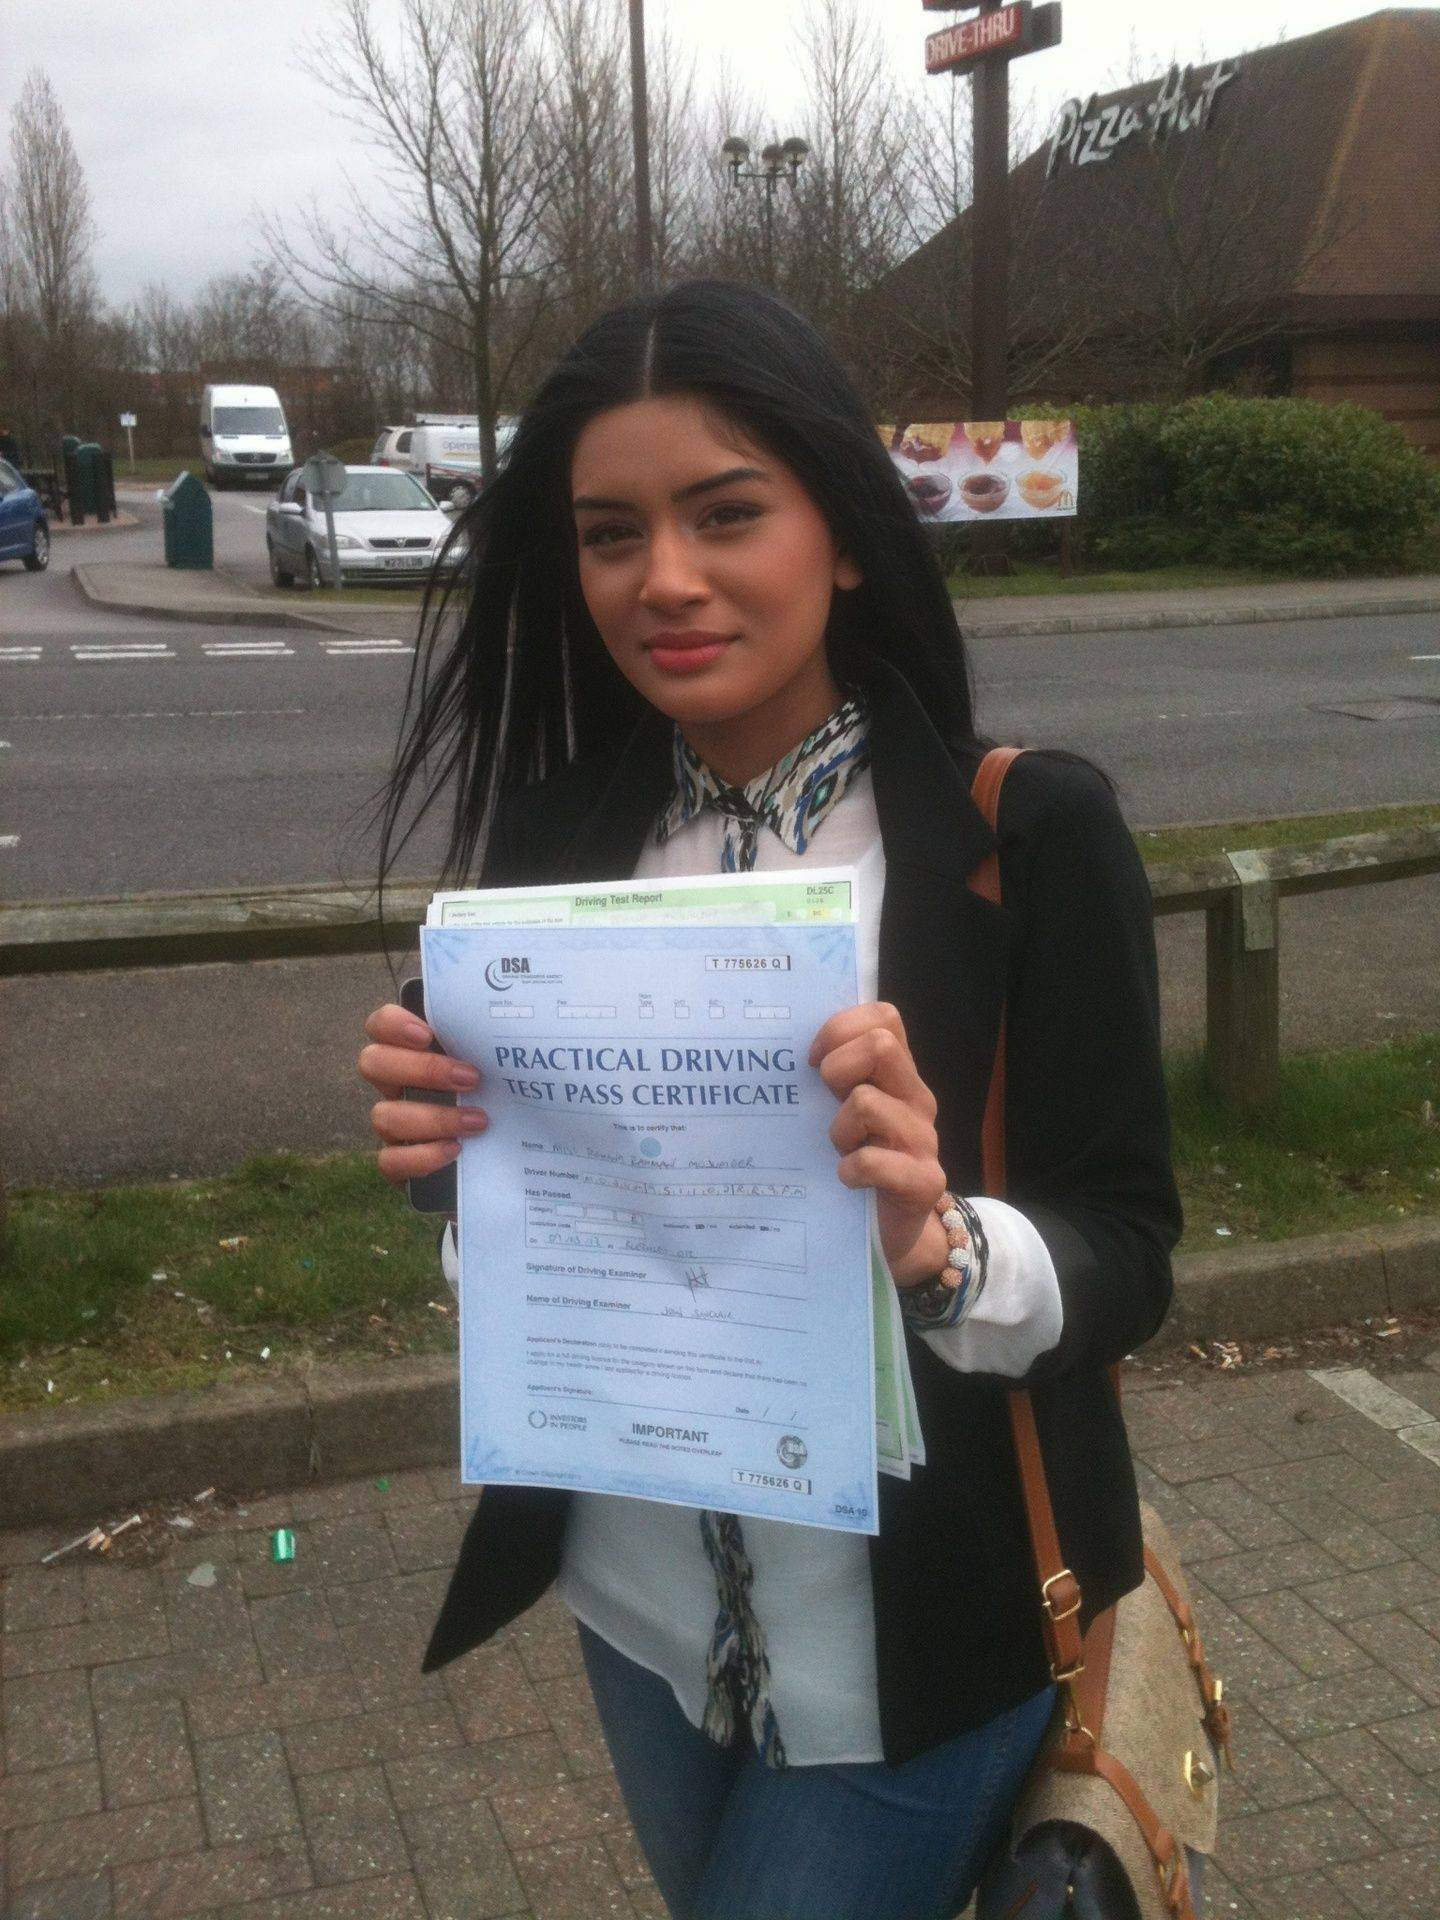 Romana passed in Milton Keynes